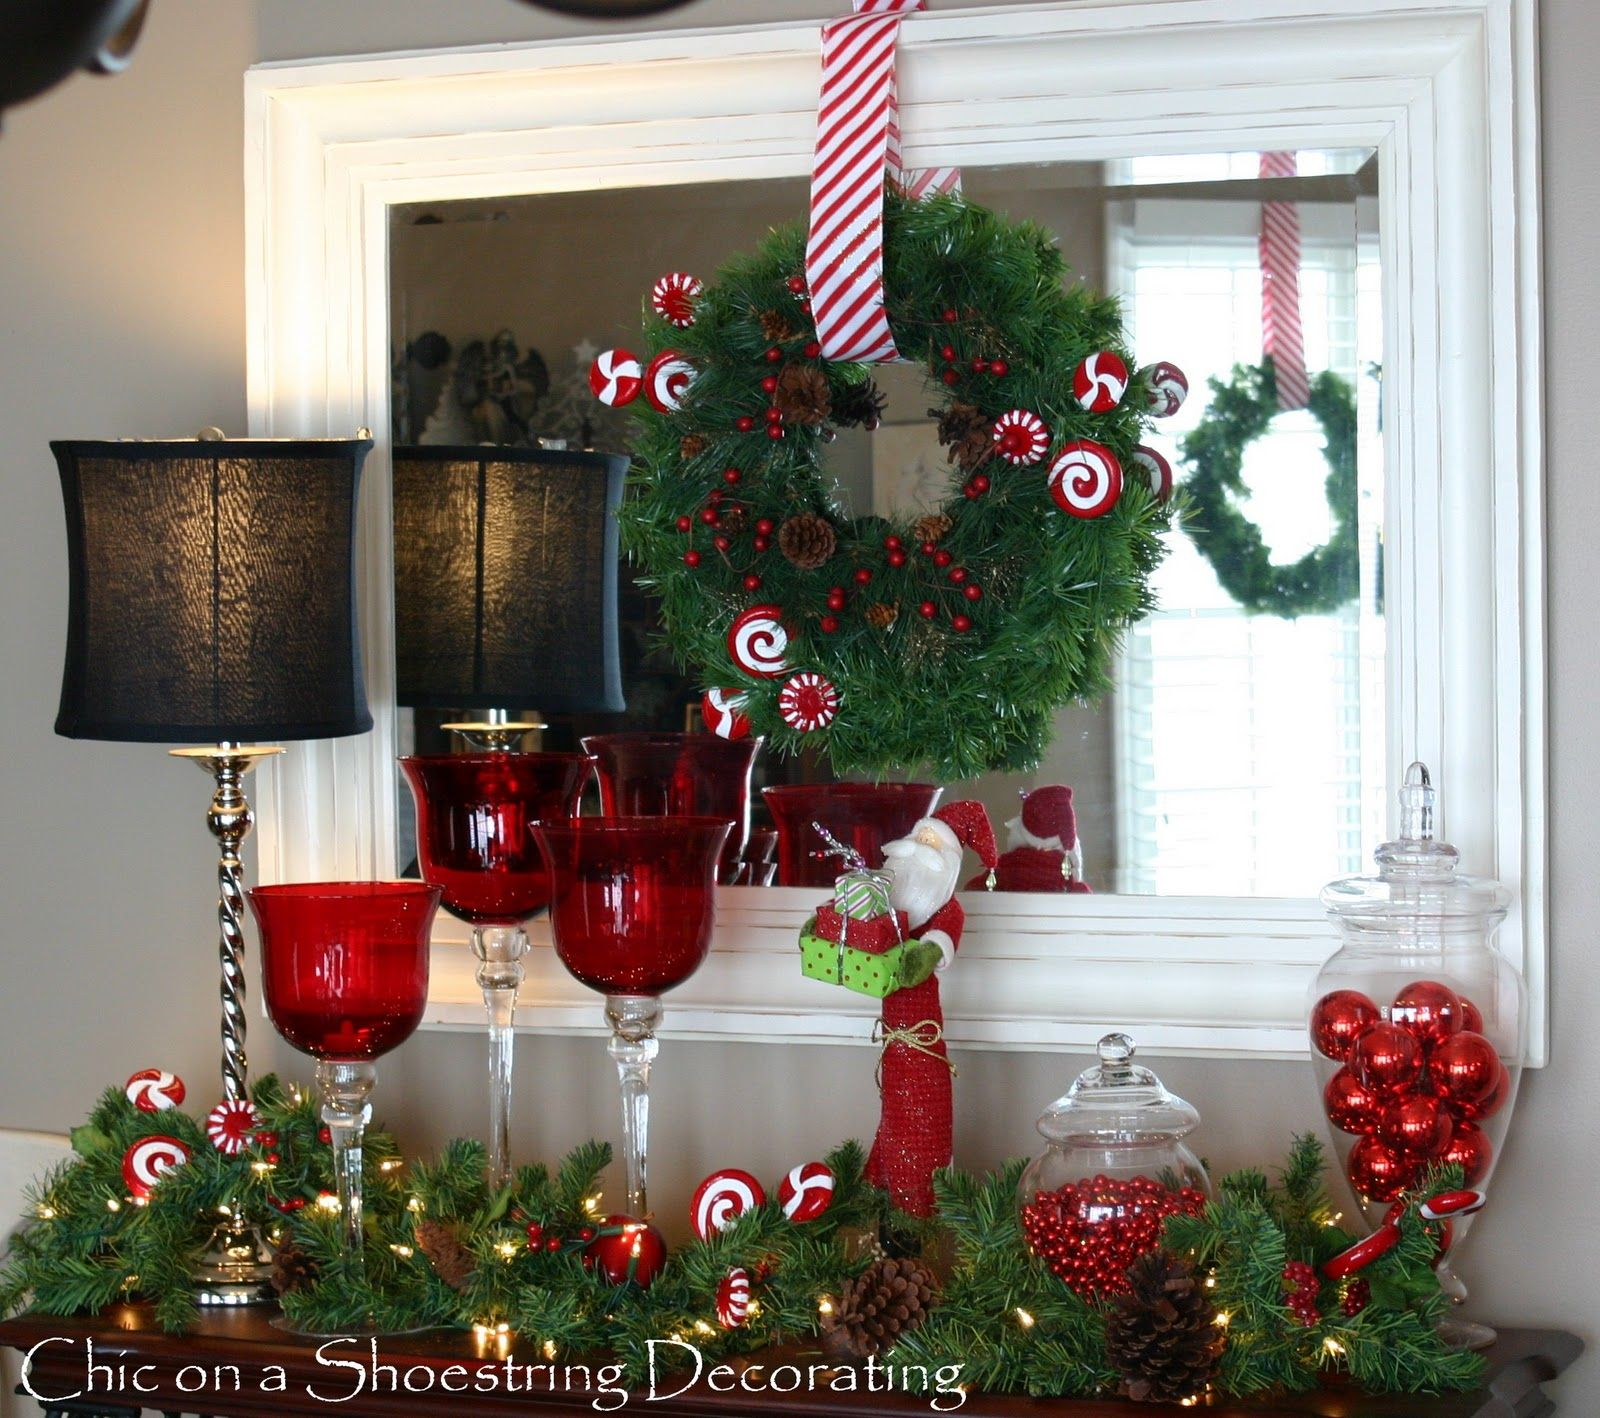 Chic On A Shoestring Decorating My Not So Simple Christmas Decor Tour,